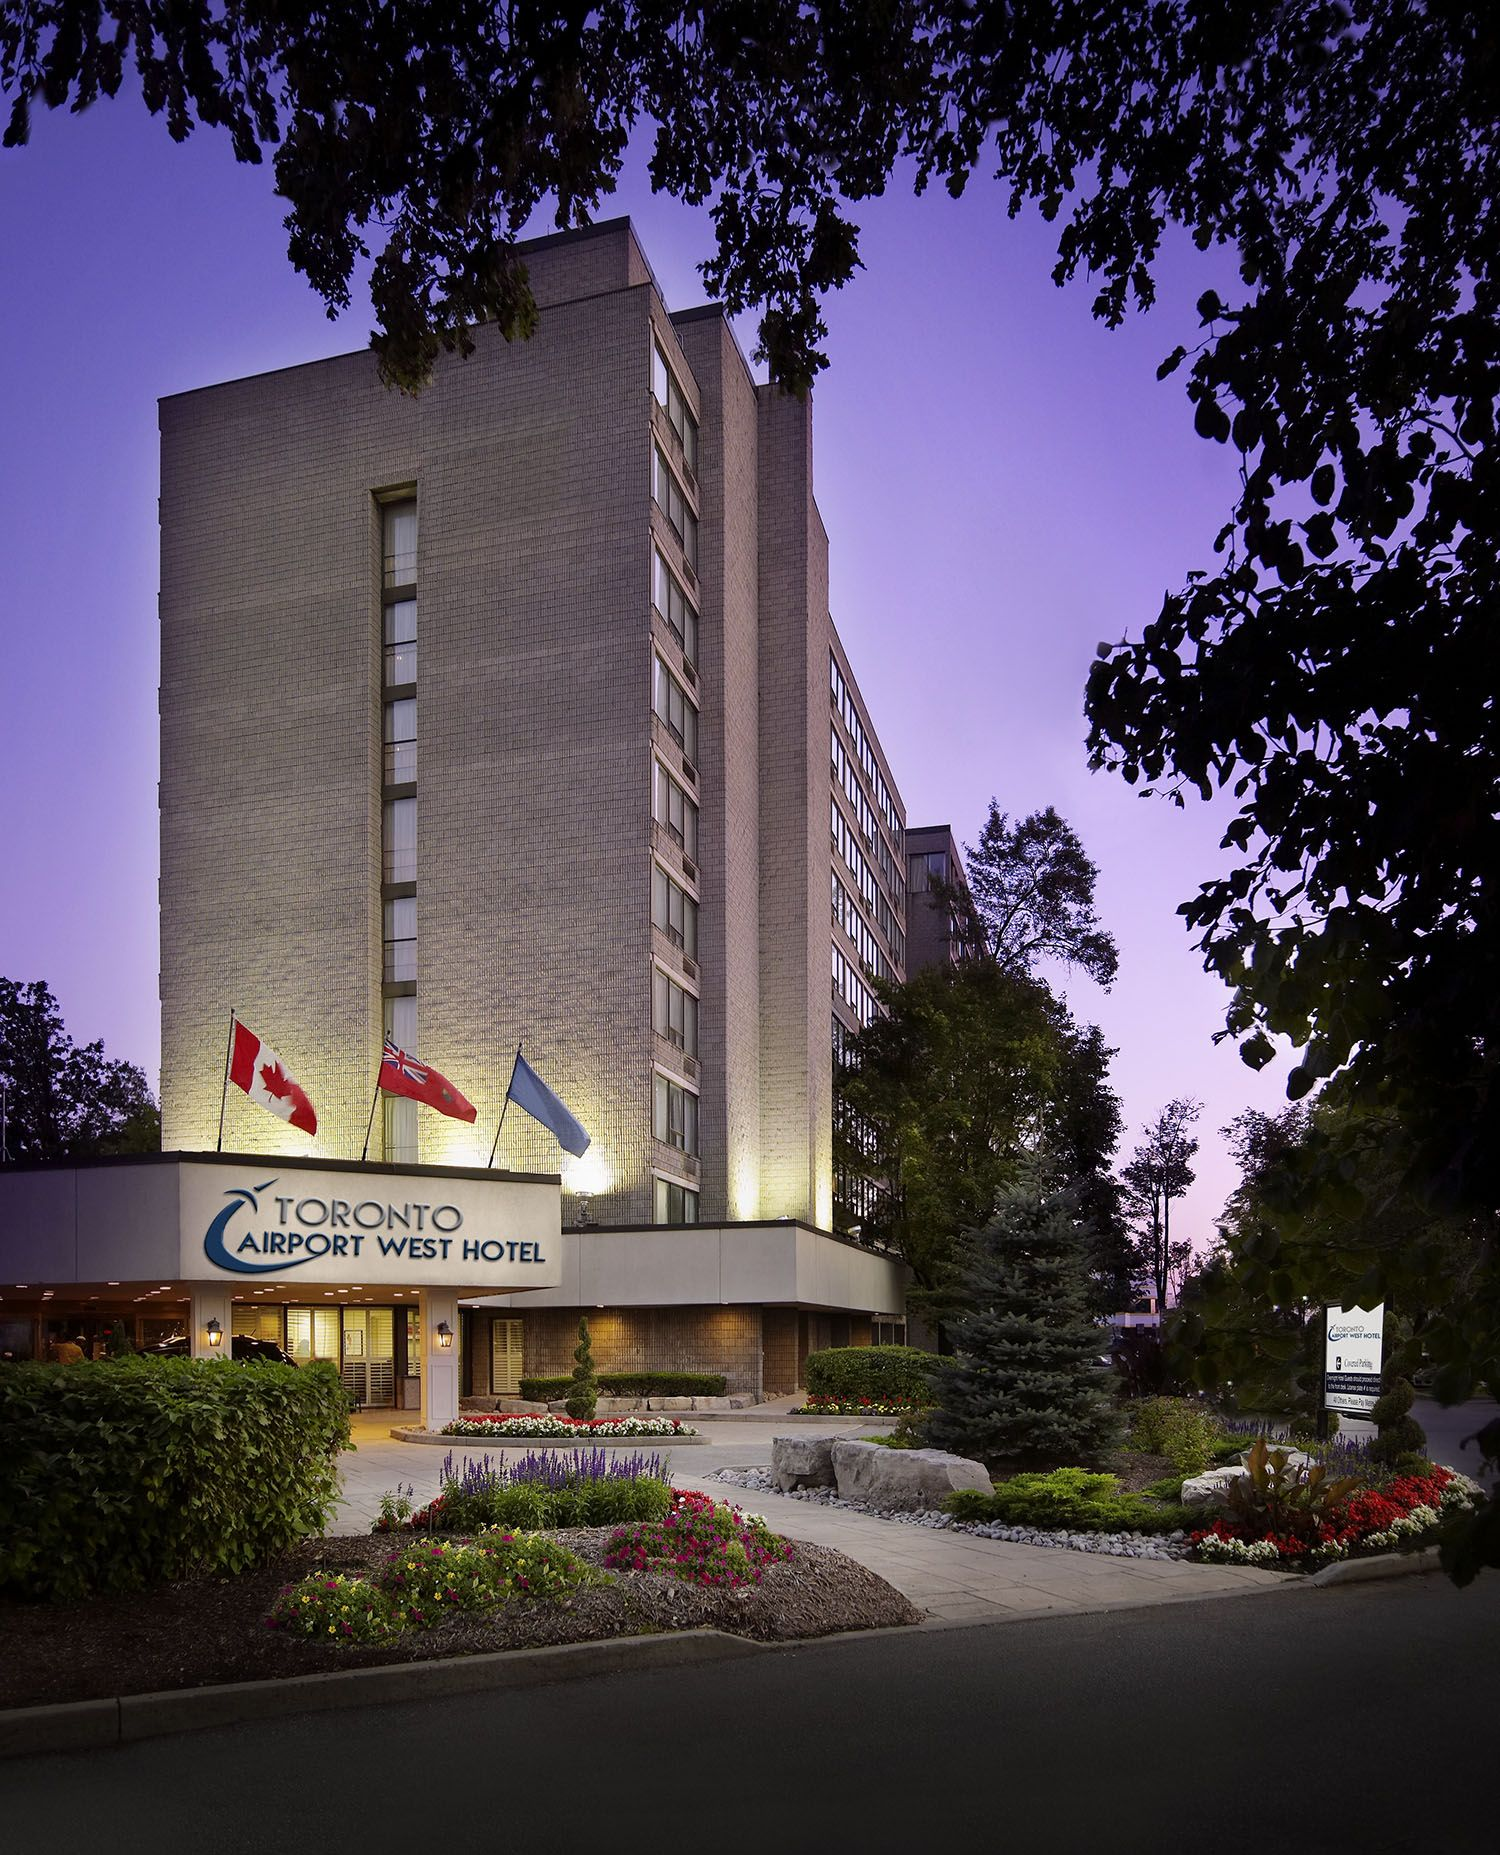 Toronto Airport West Hotel in Mississauga, ON